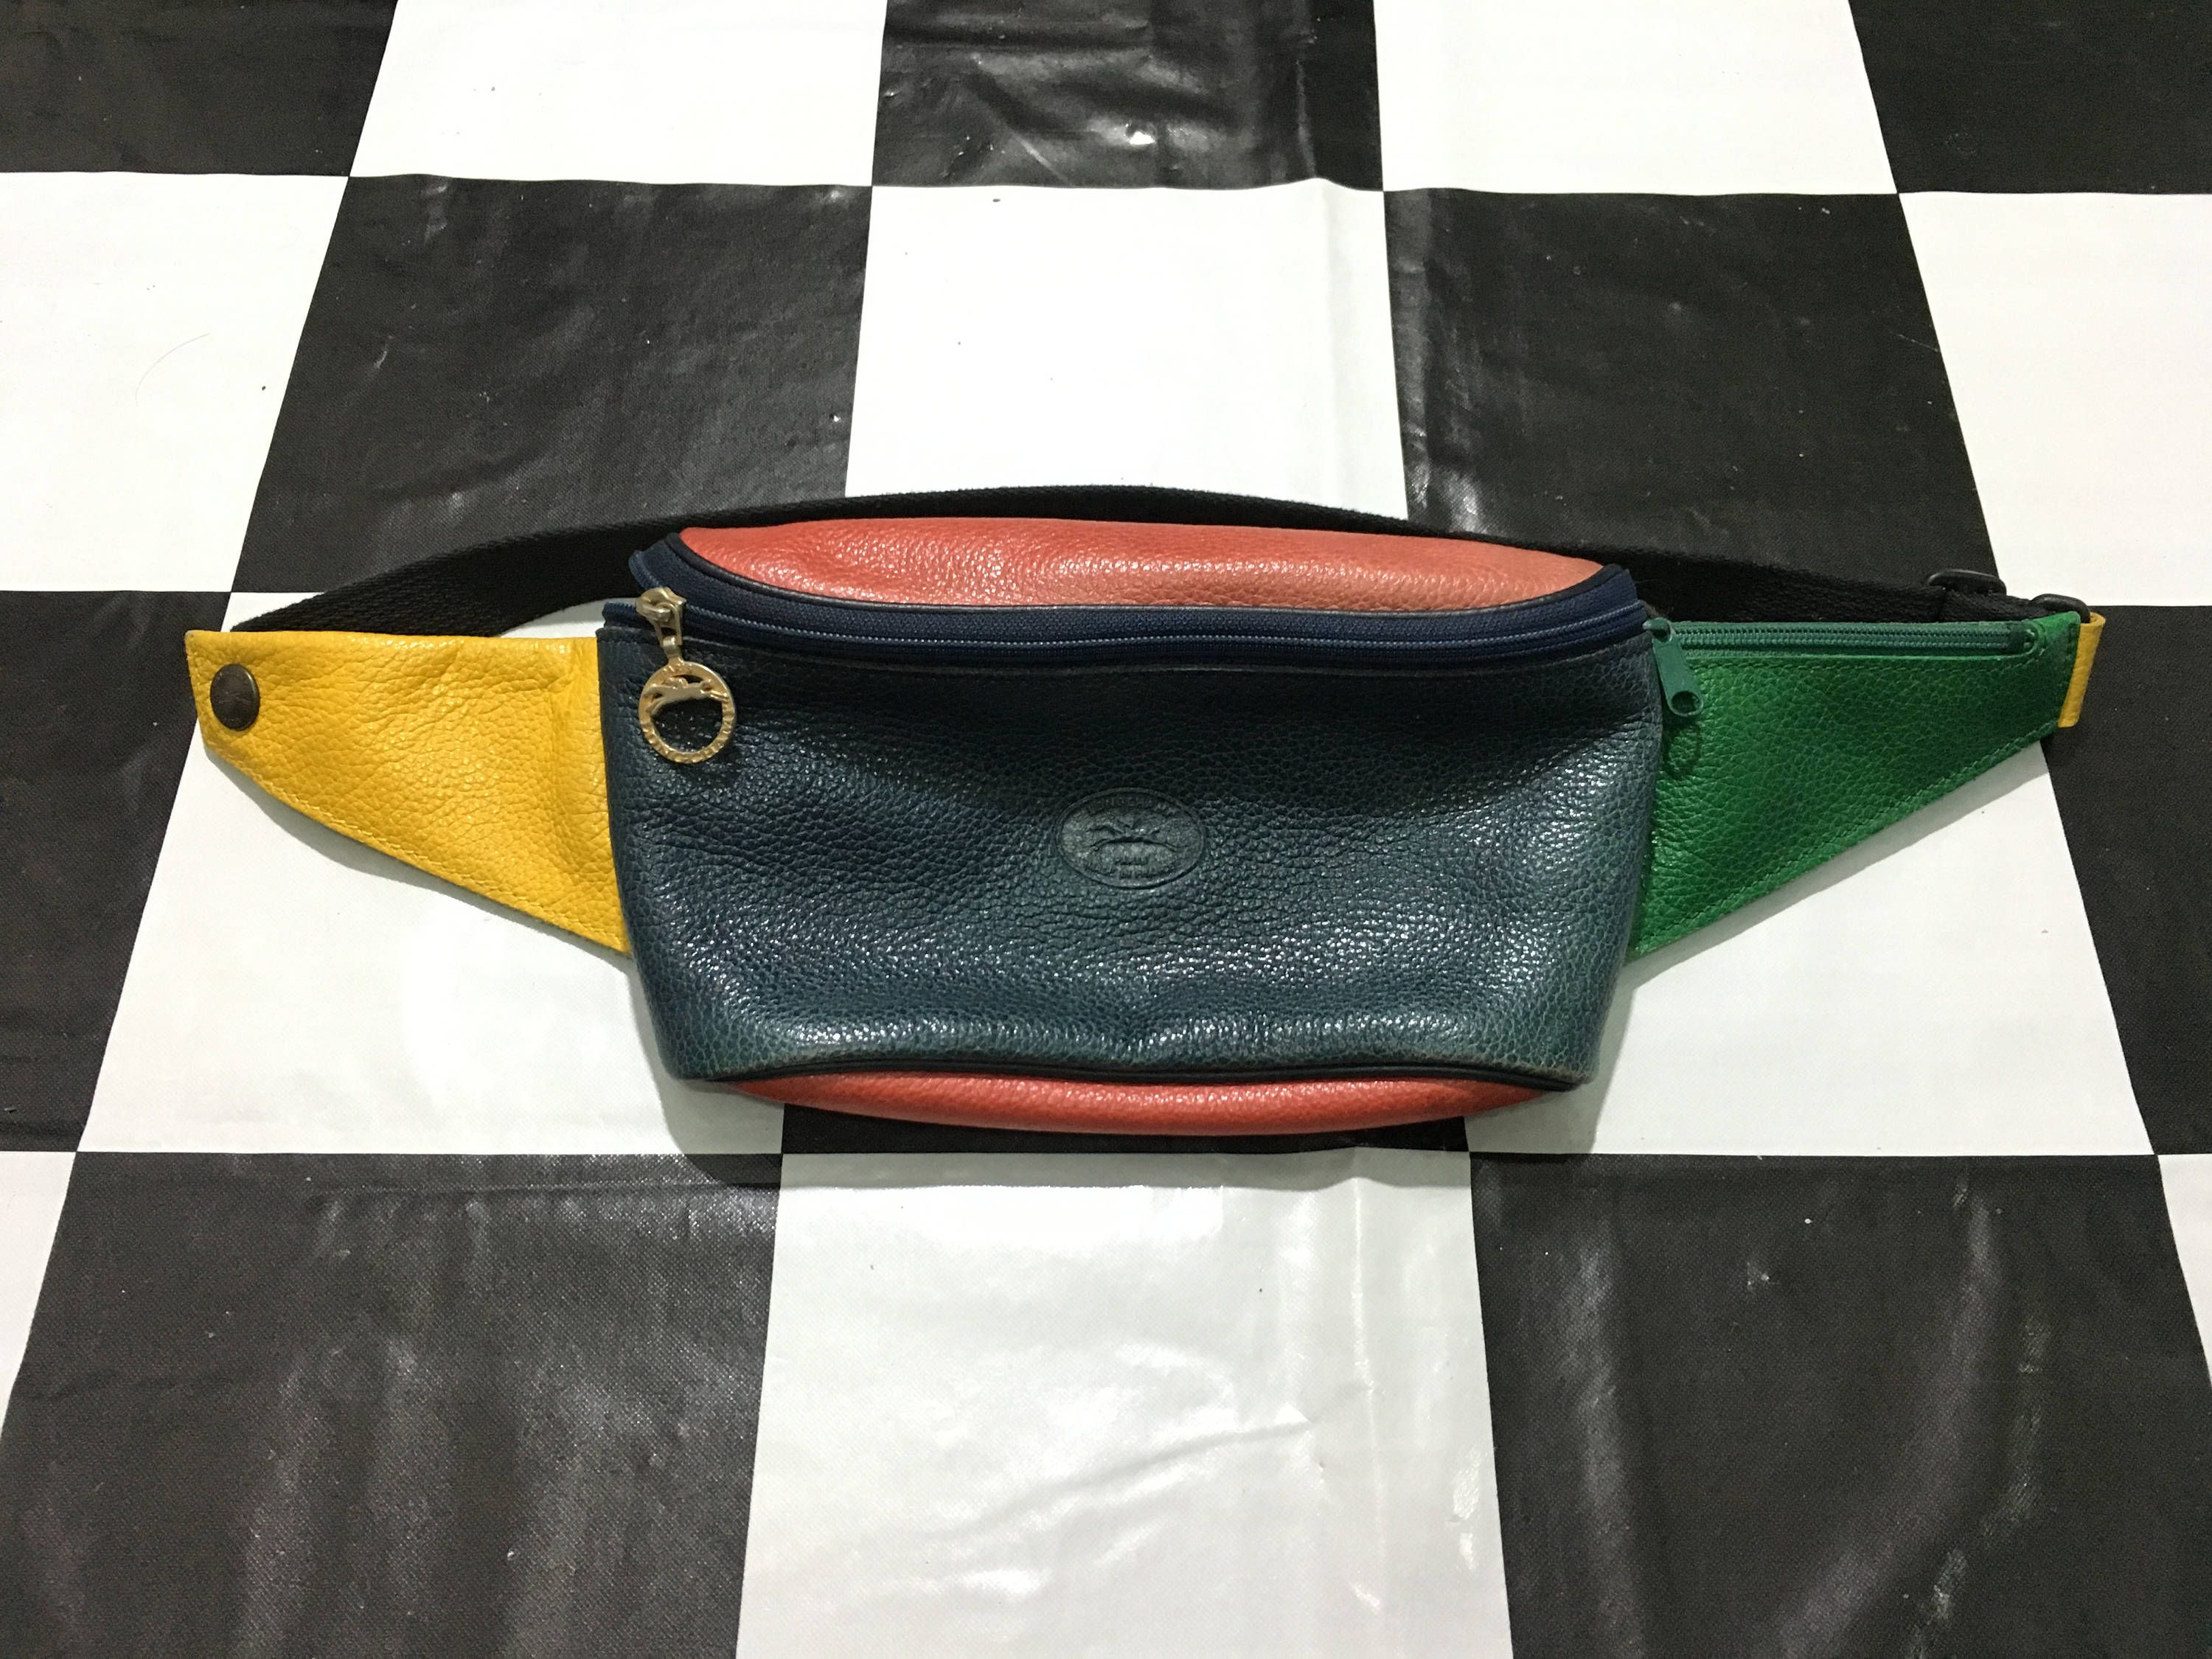 Vintage Longchamp waist bag multi-color leather fanny pack Made in France Longchamp  Paris Excellent condition by AlivevintageShop on Etsy 9431f78d84